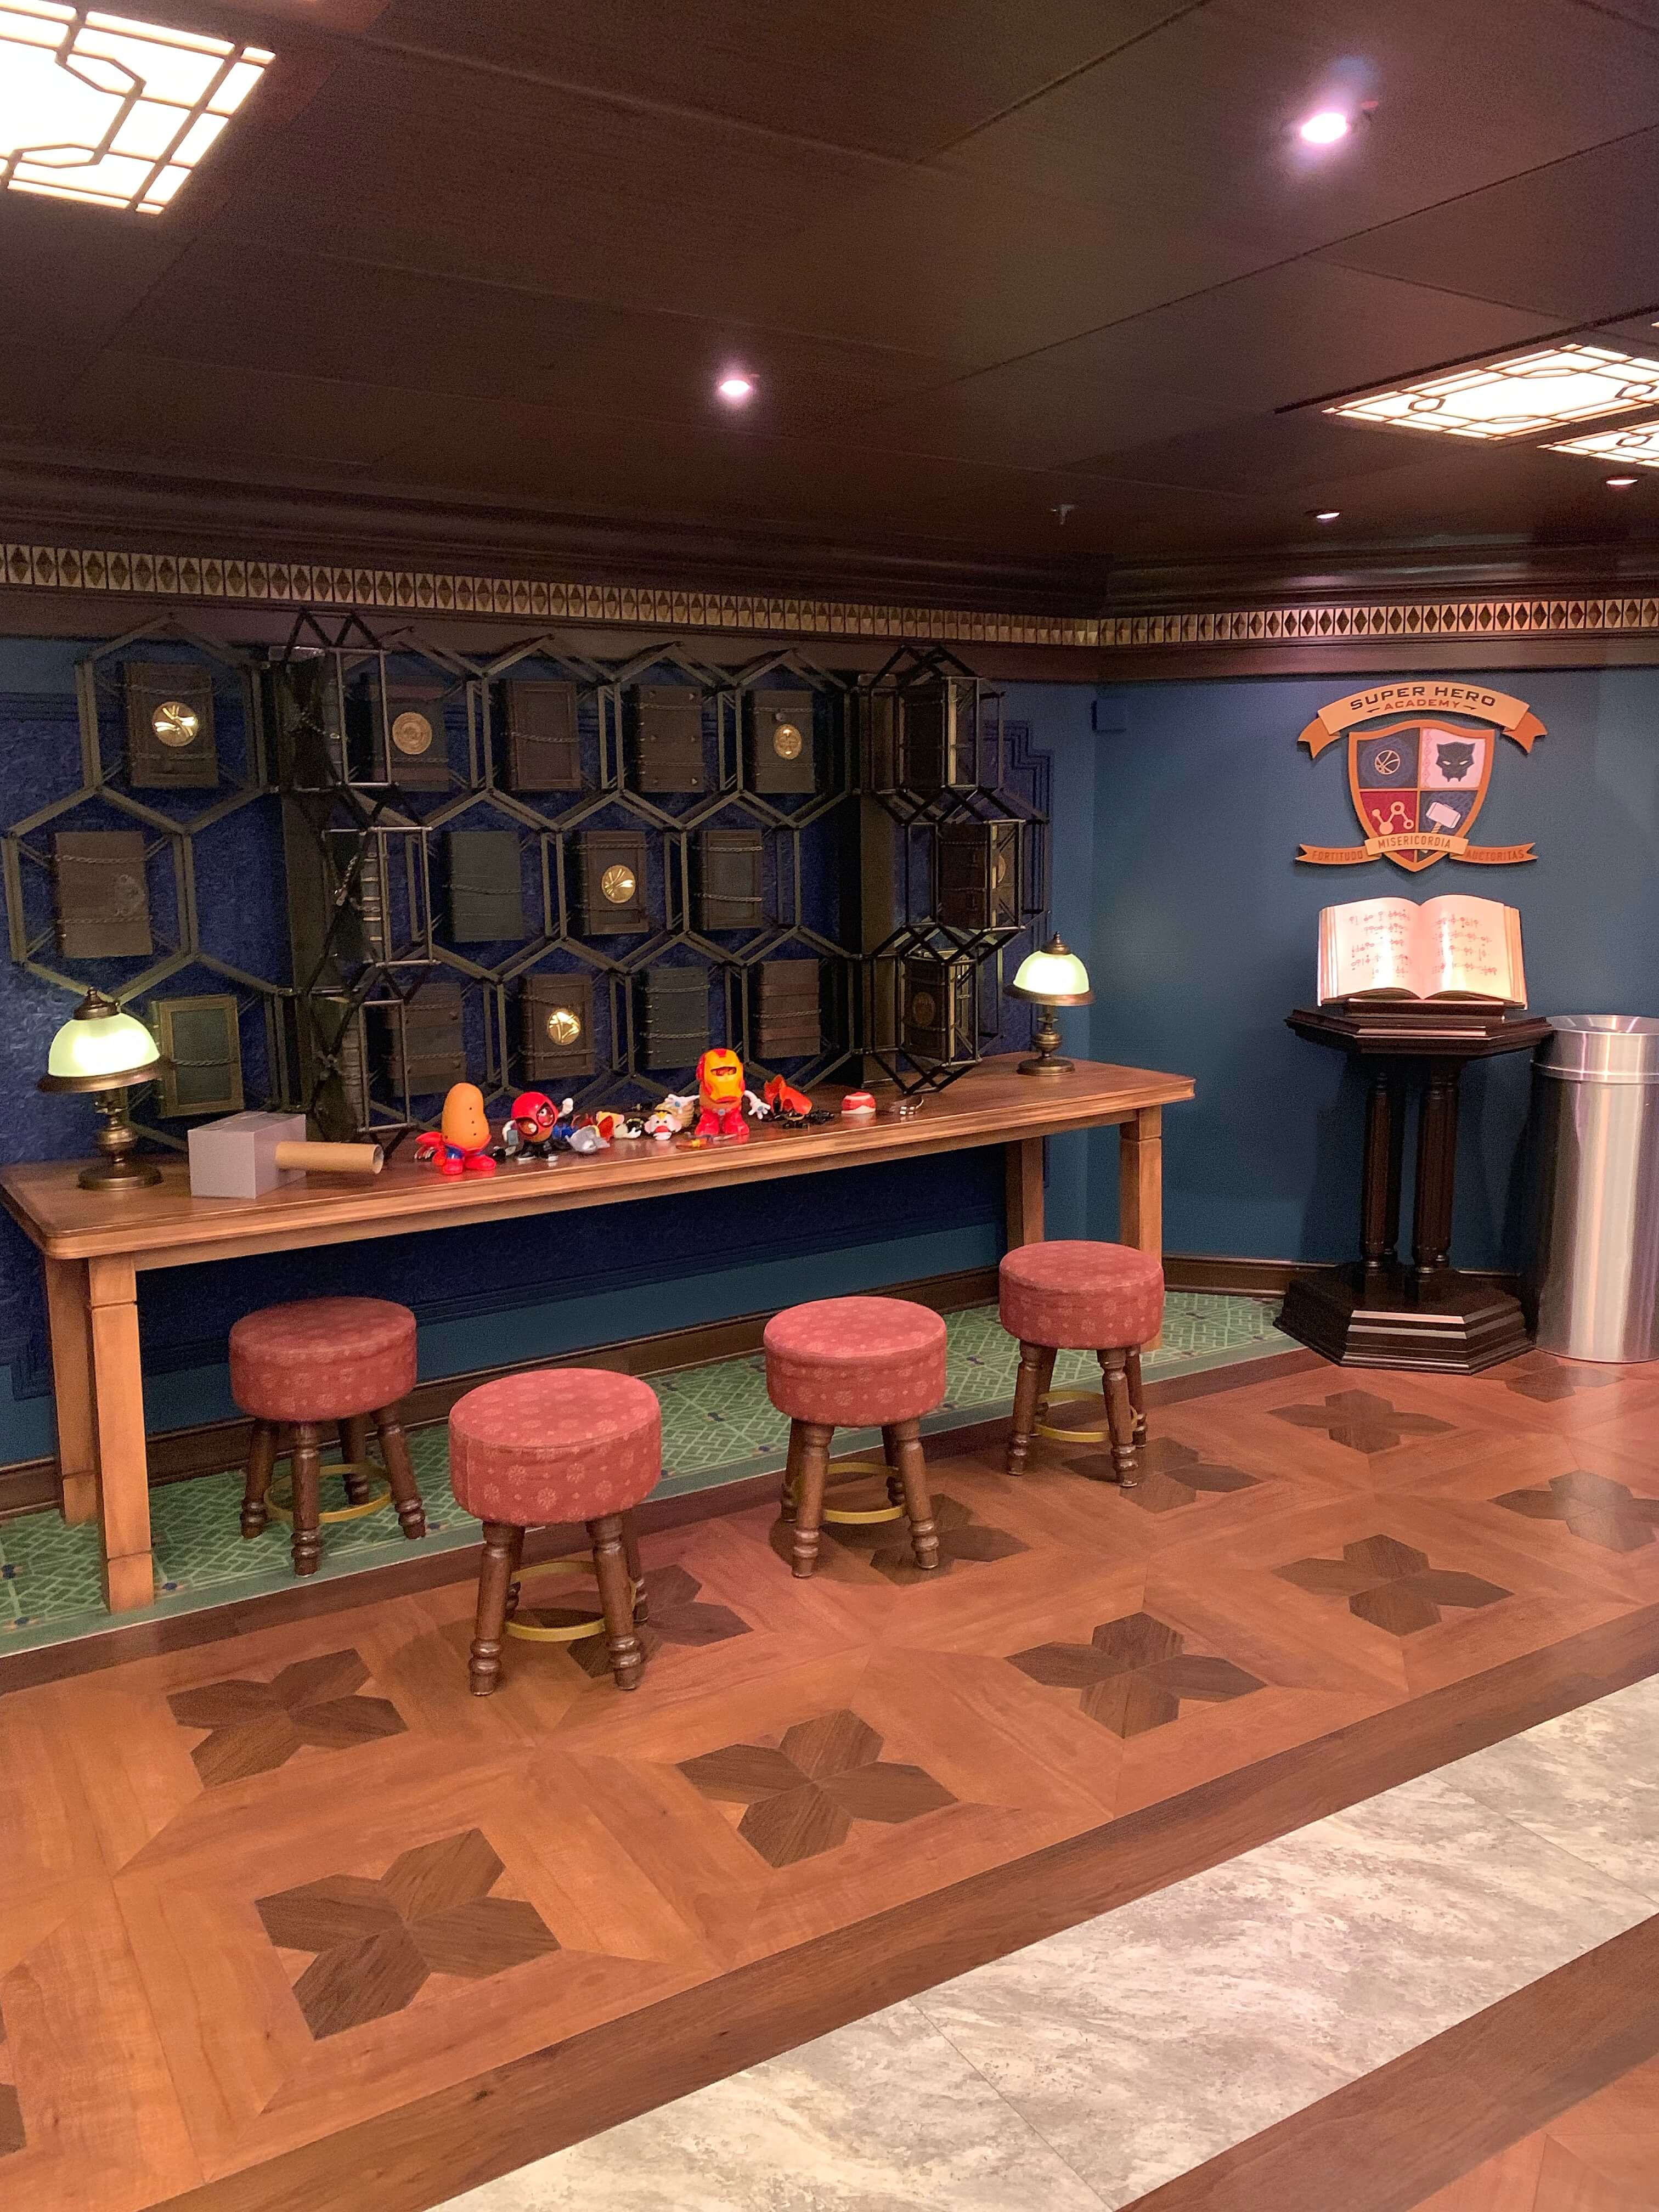 Review of our cruise on the Disney Fantasy; air canada vacations disney cruise; mandy furnis sparkleshinylove